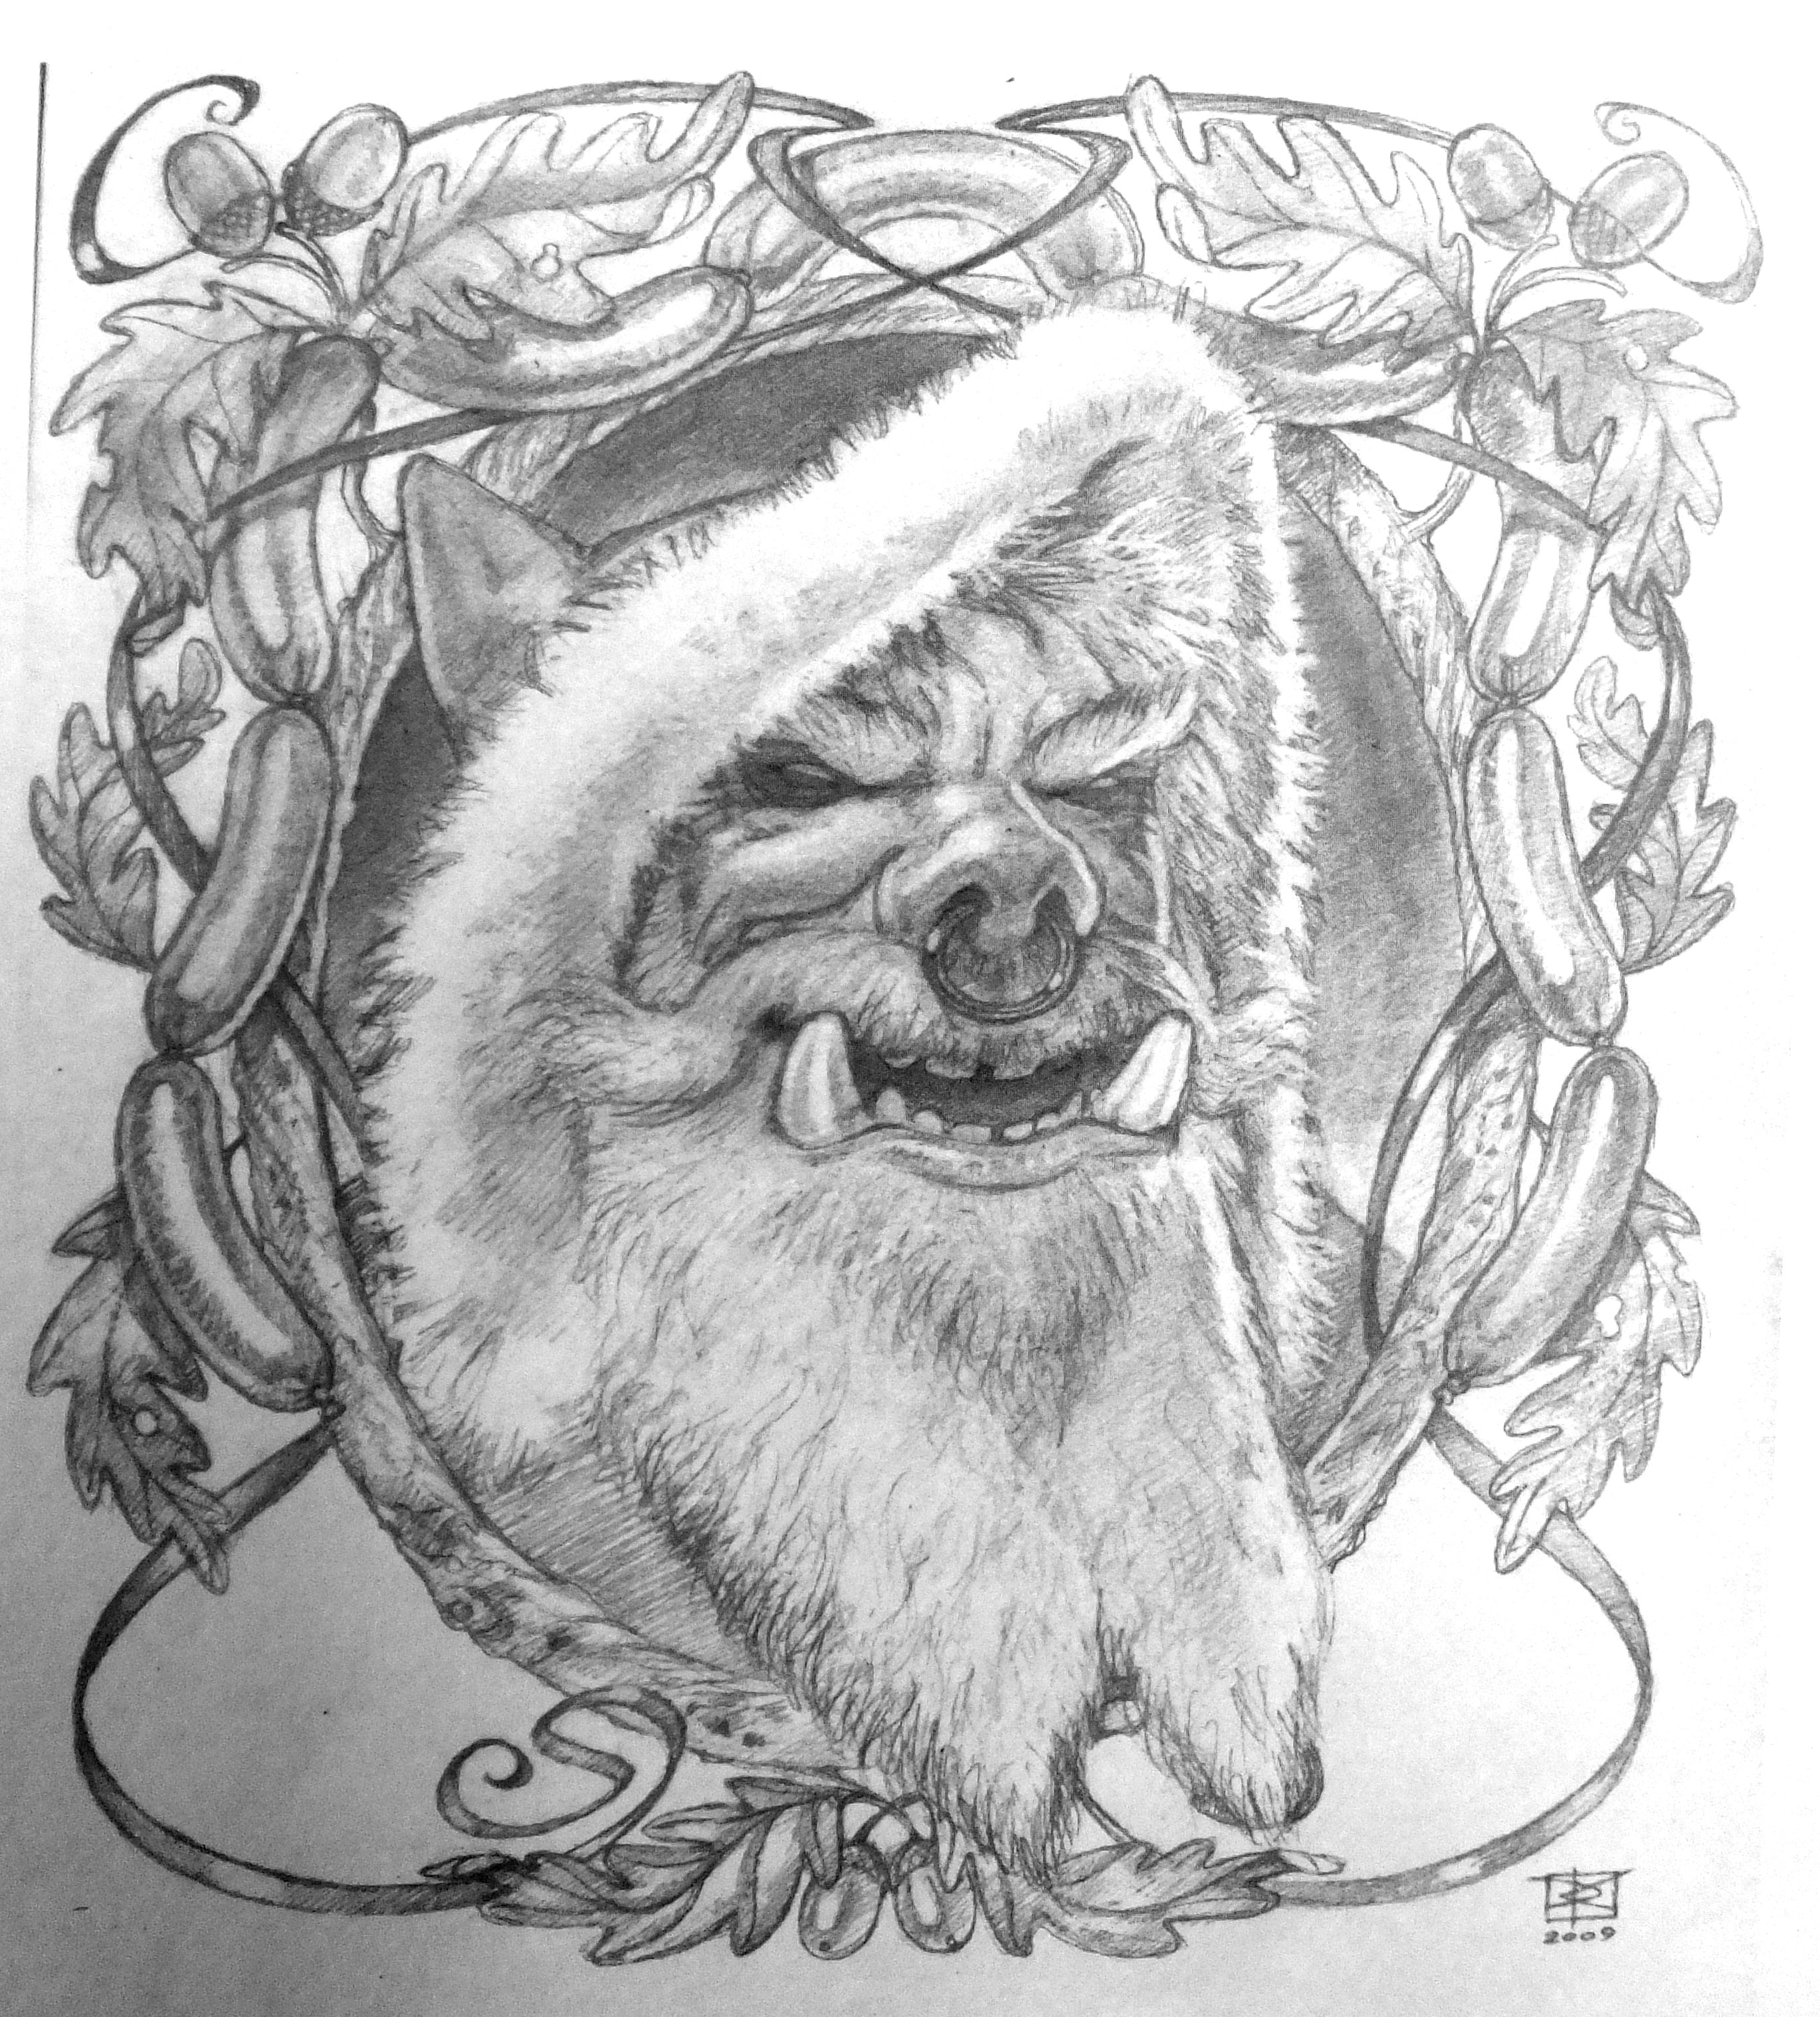 Hogfather artwork